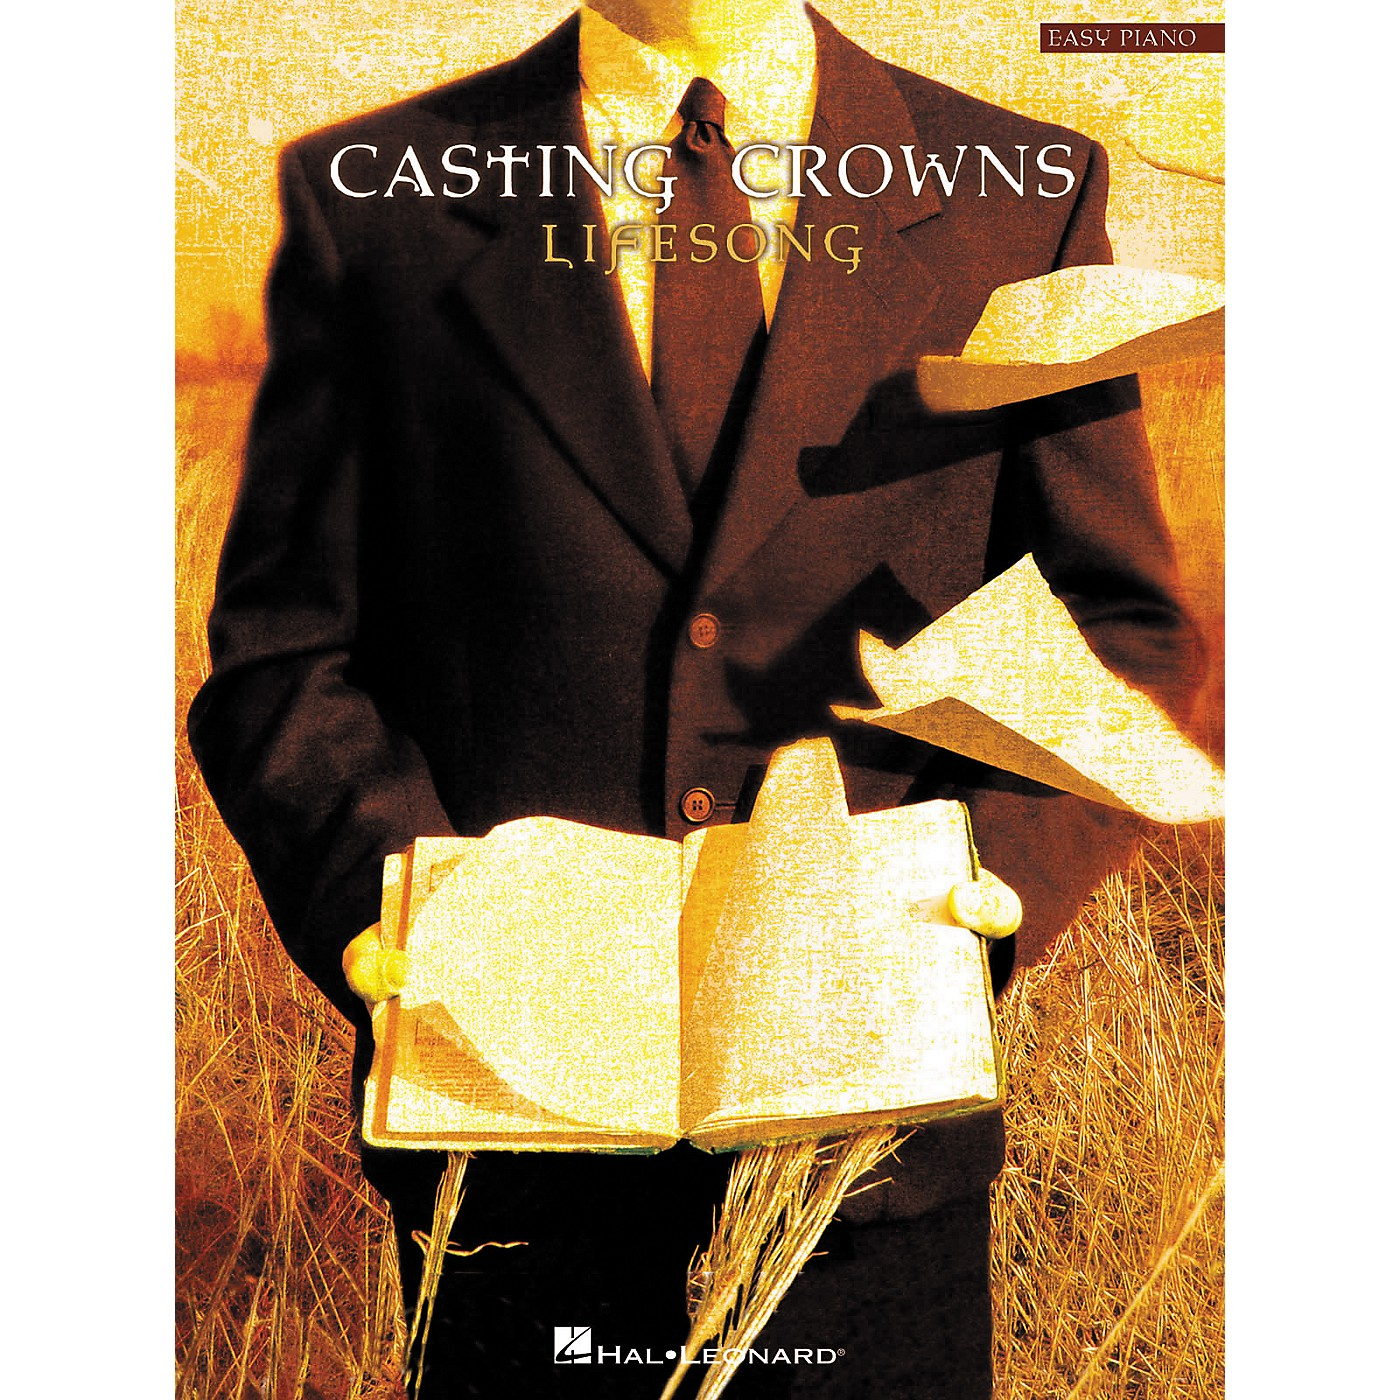 Hal Leonard Casting Crowns - Lifesong For Easy Piano thumbnail